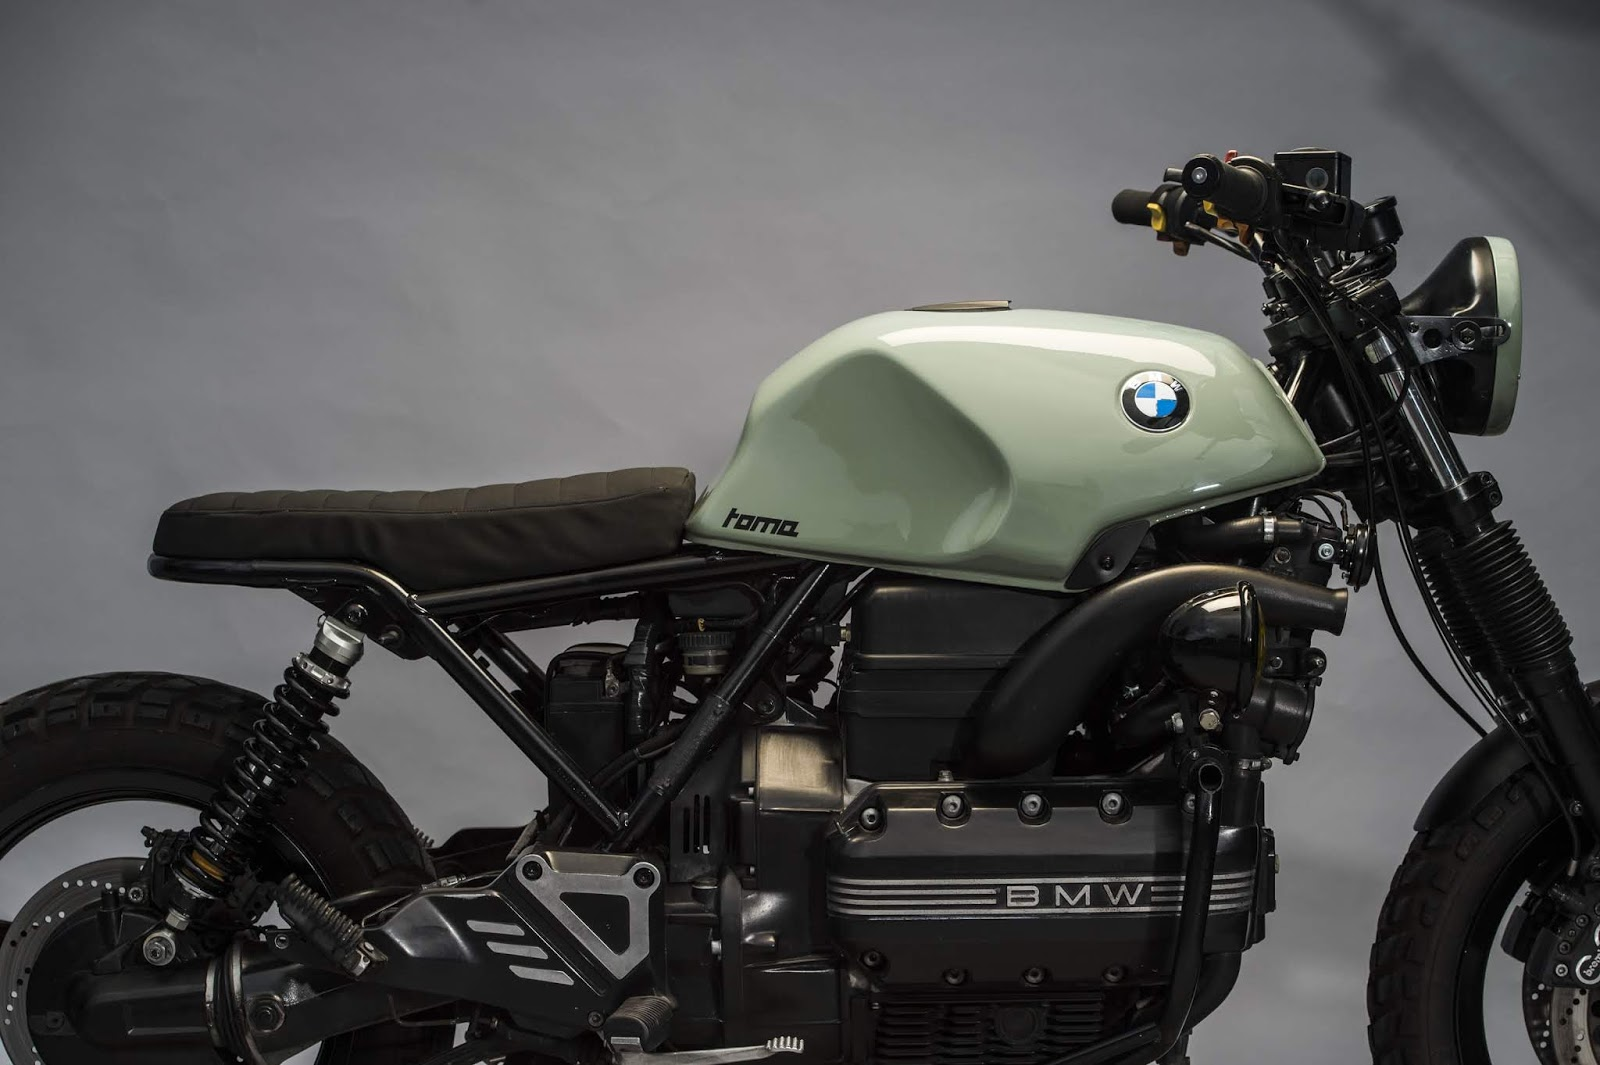 BMW K1100 BY TOMA CUSTOMS